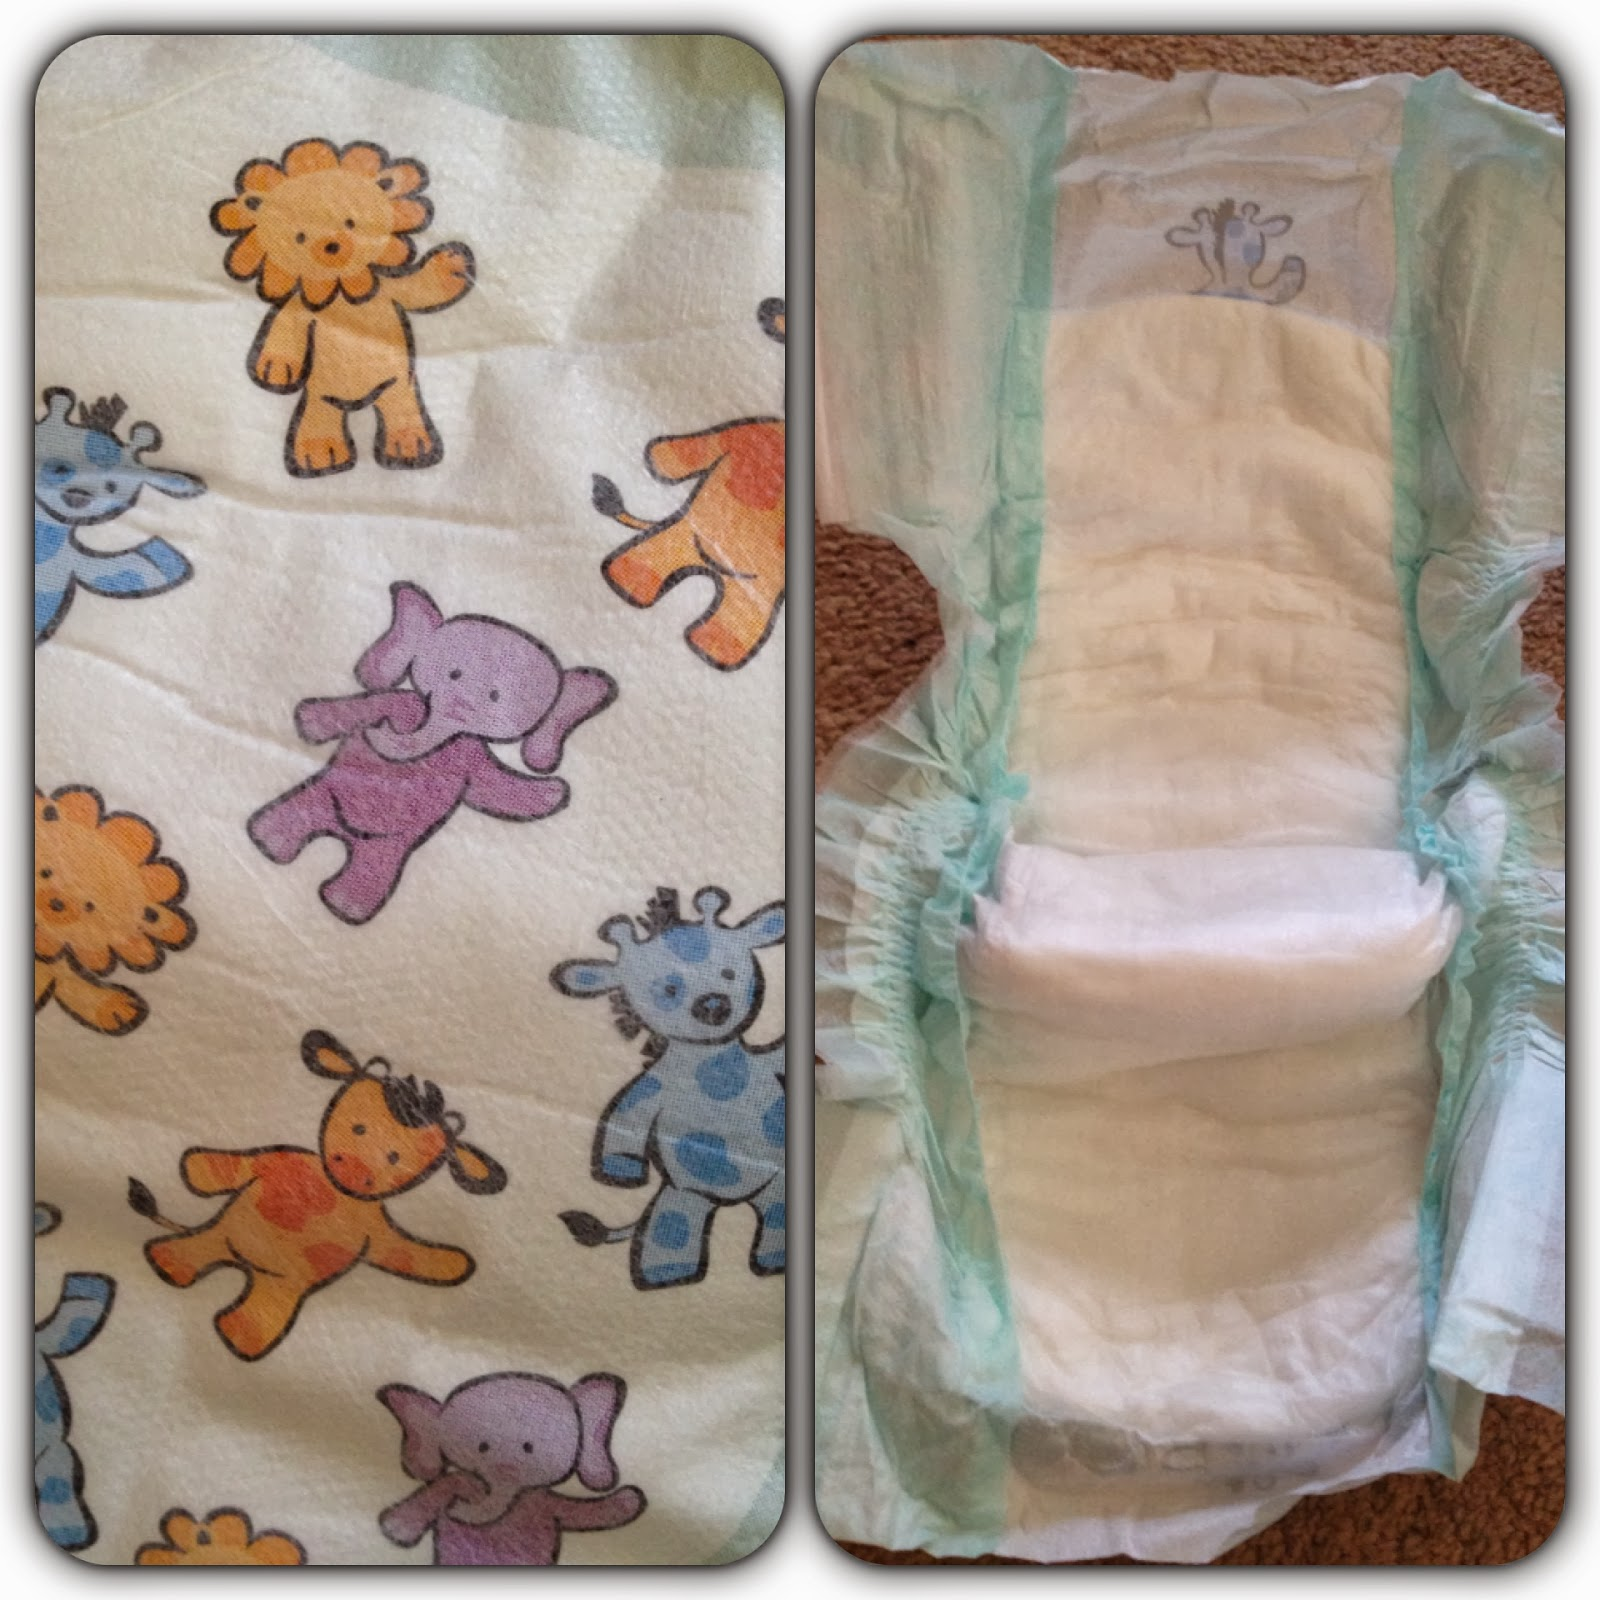 Aldi Mamia Nappies design